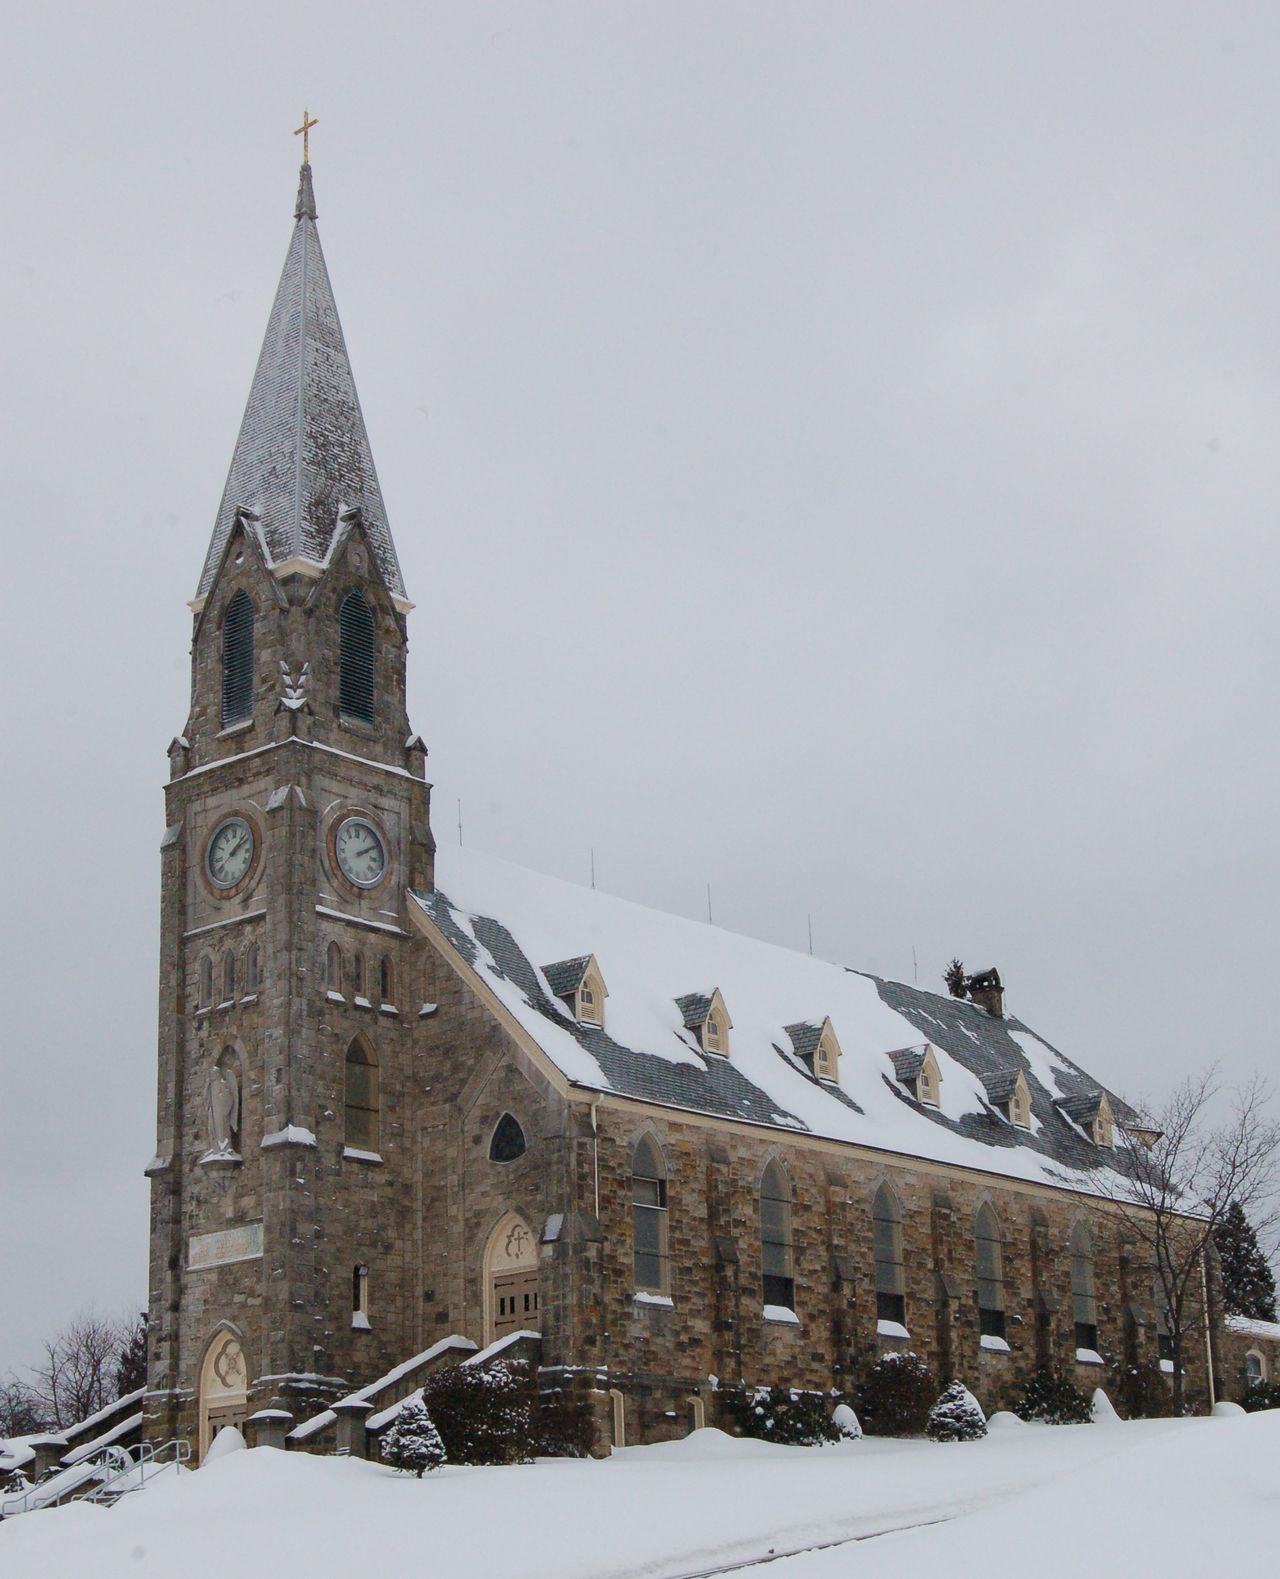 Church in Fryburg, Pennsylvania. Architecture Building Exterior Built Structure Church Cold Temperature Day Fryburg, Pennsylvania Low Angle View No People Outdoors Overast Sk Place Of Worship Religion Sky Snow Snowdrift Spirituality Tranquility Travel Destinations Tree Weather Winter